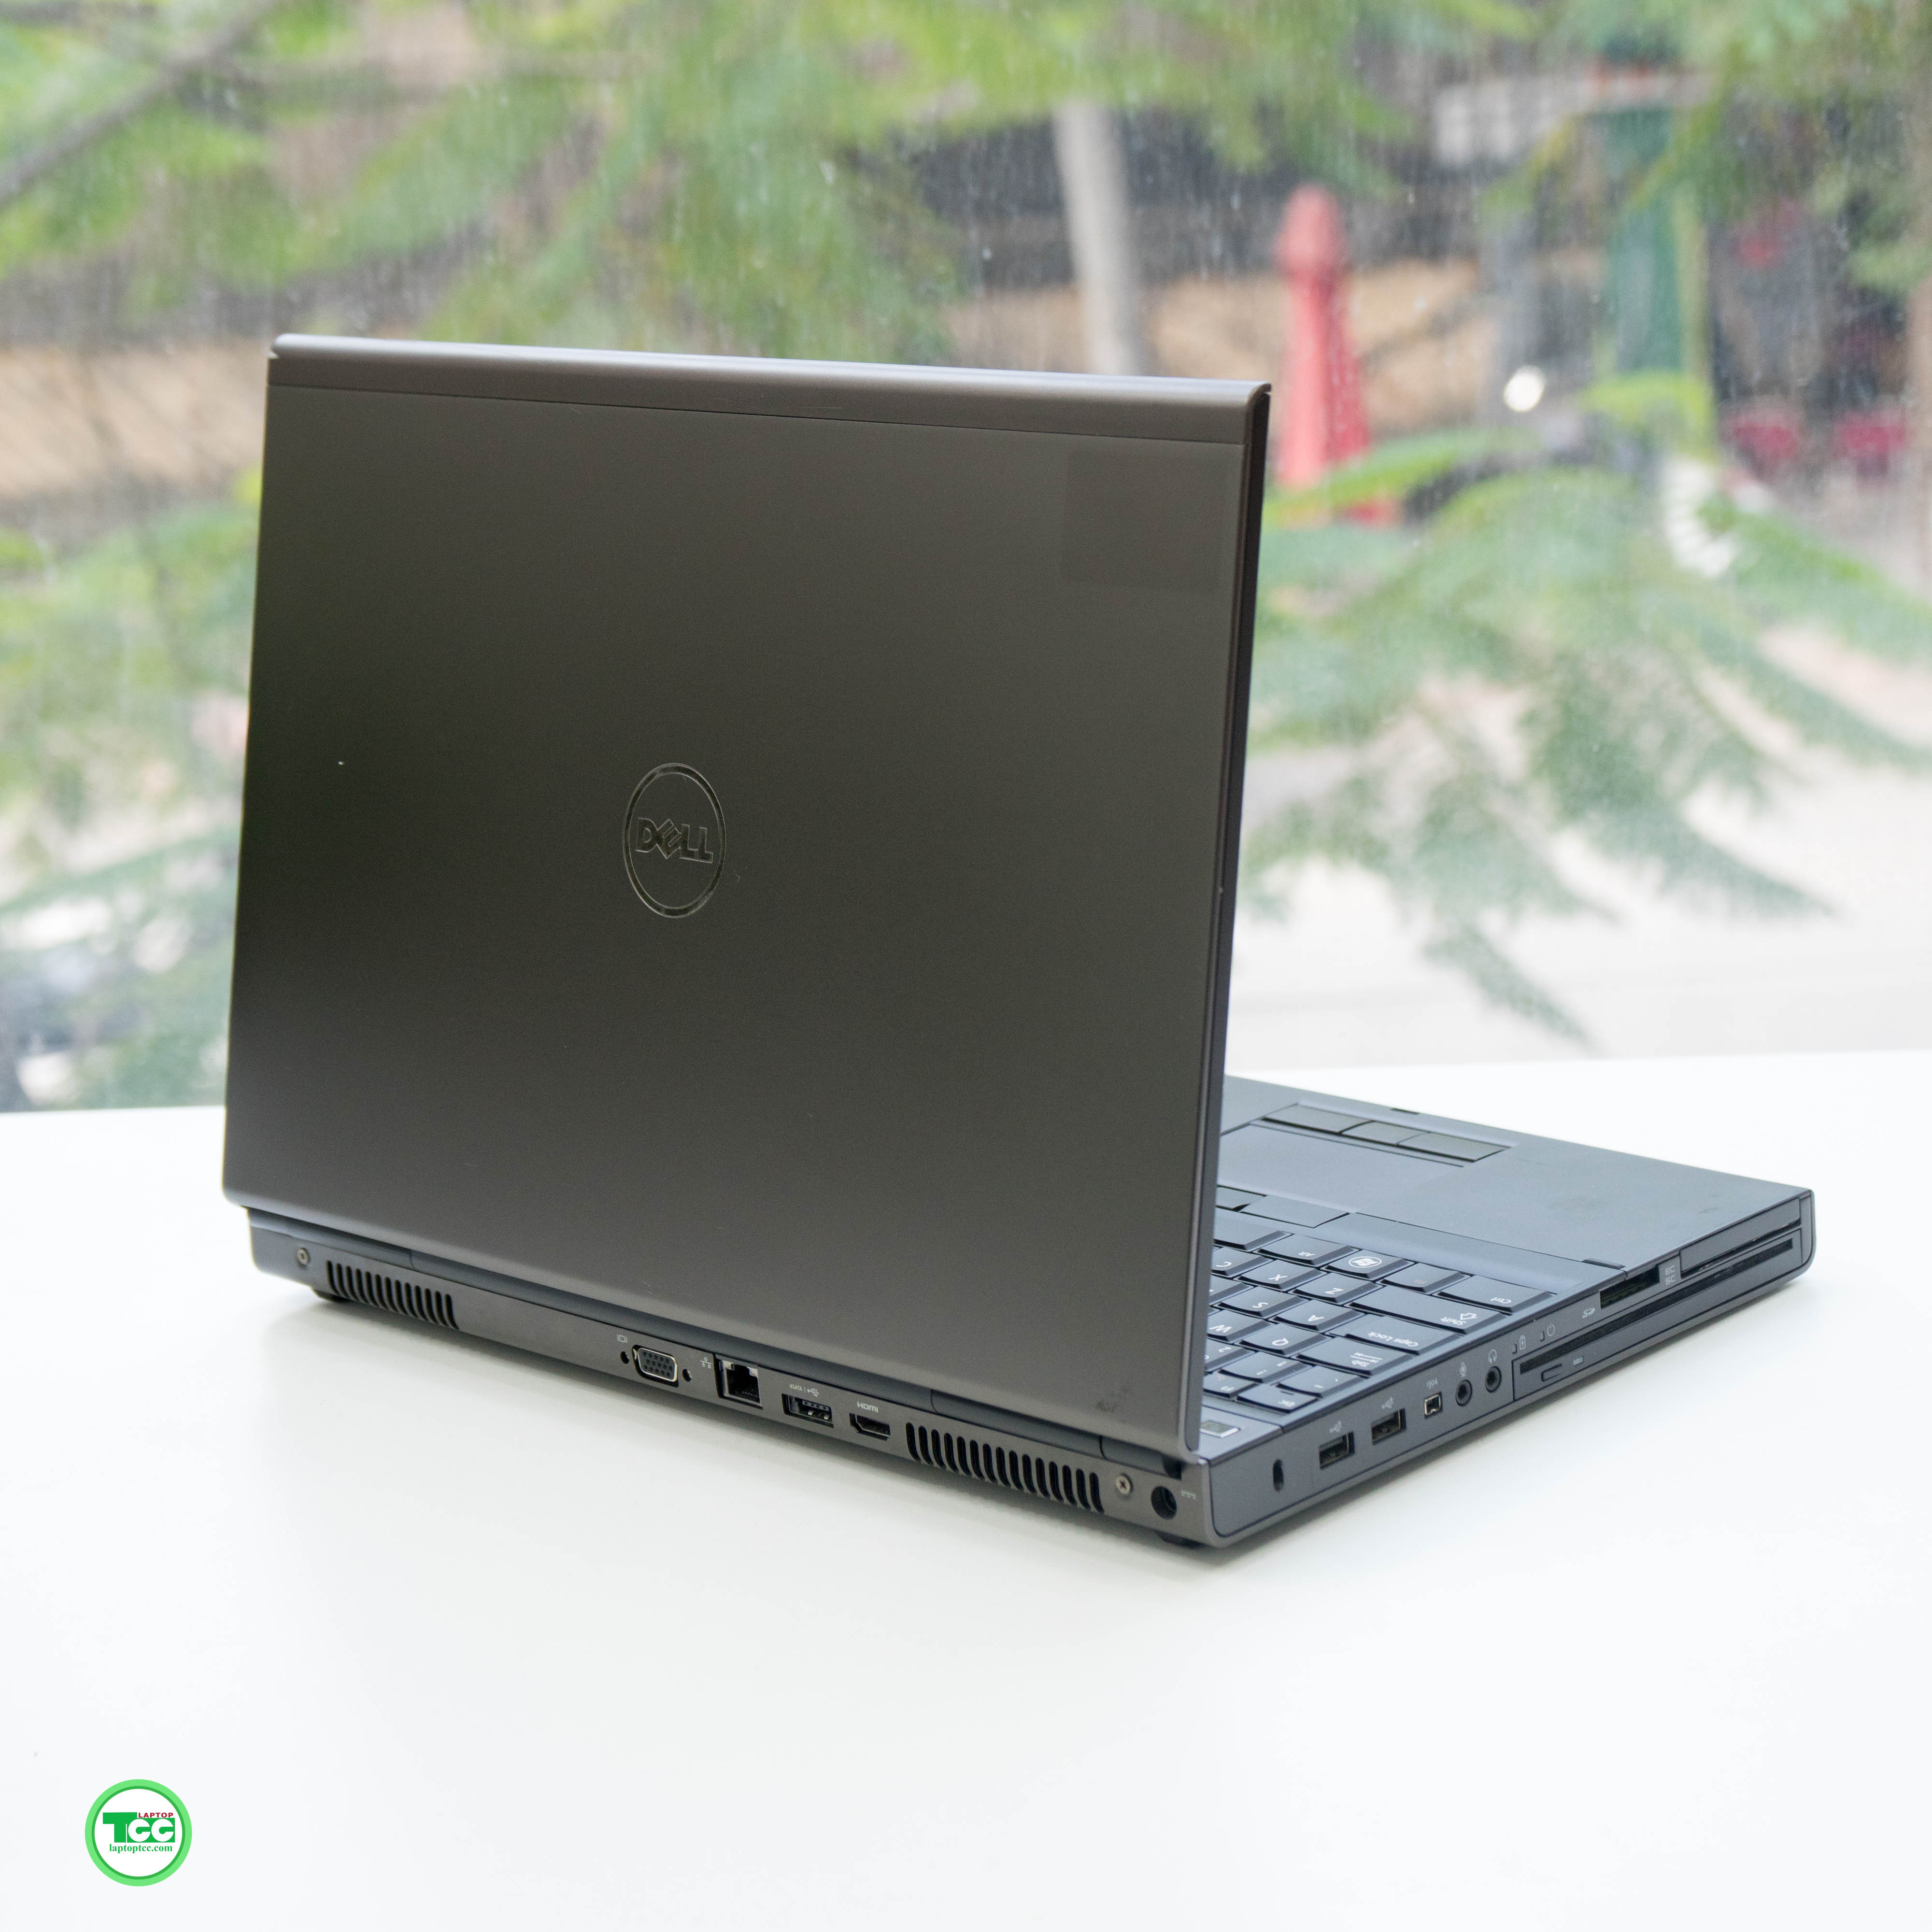 Laptop Tcc Dell Precision m4600 (1)